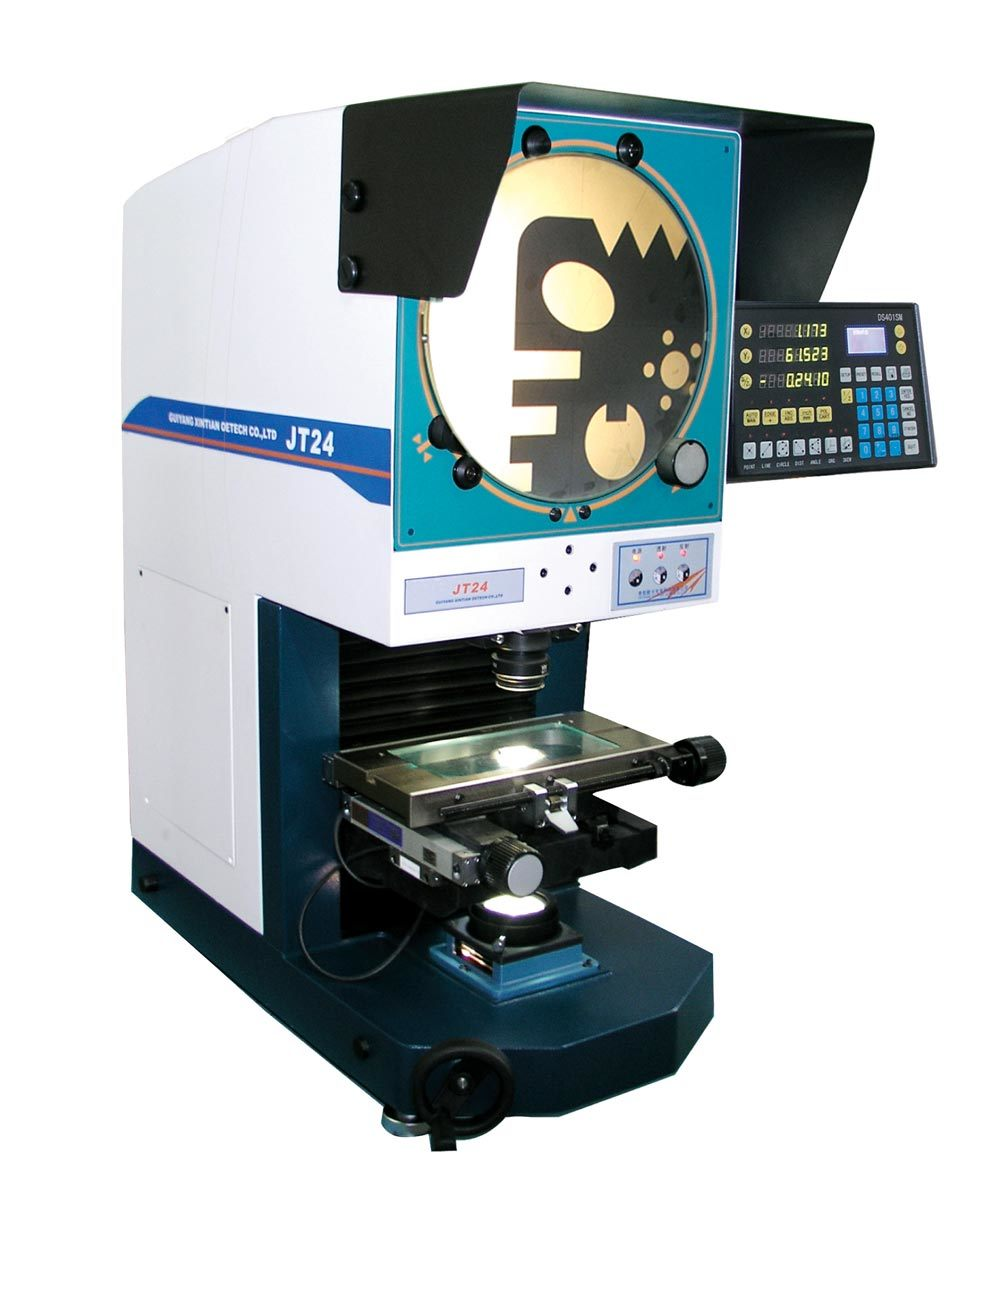 Universal Digital Horizontal Measuring Profile Projector (JT24: 300mm, 200mmX80mm)